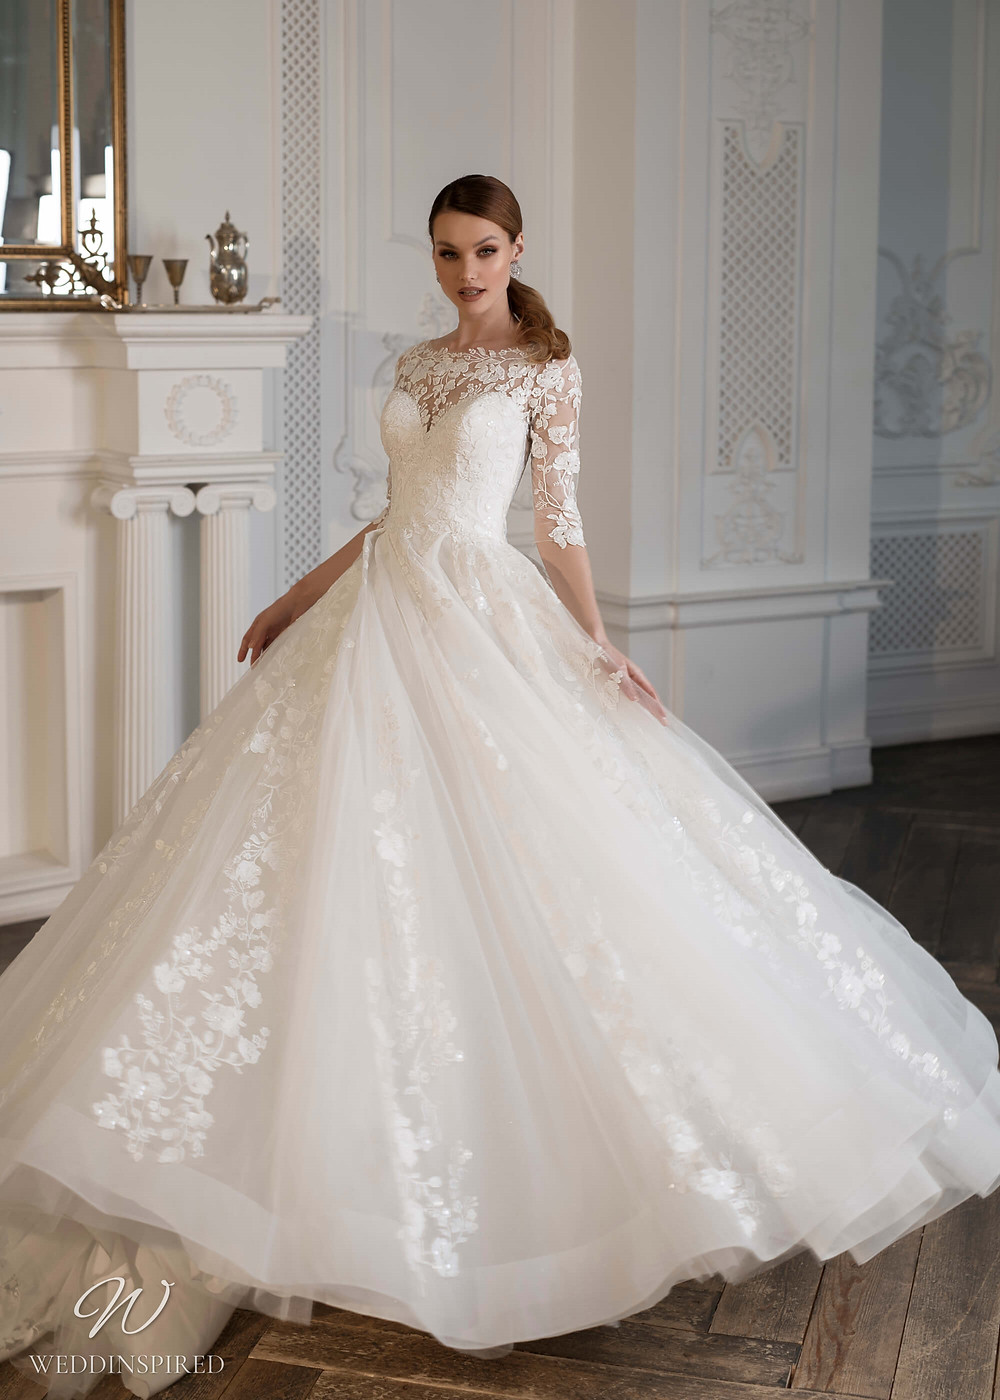 A Naviblue Bridal 2021 romantic lace and tulle ball gown wedding dress with half sleeves and a sweetheart neckline